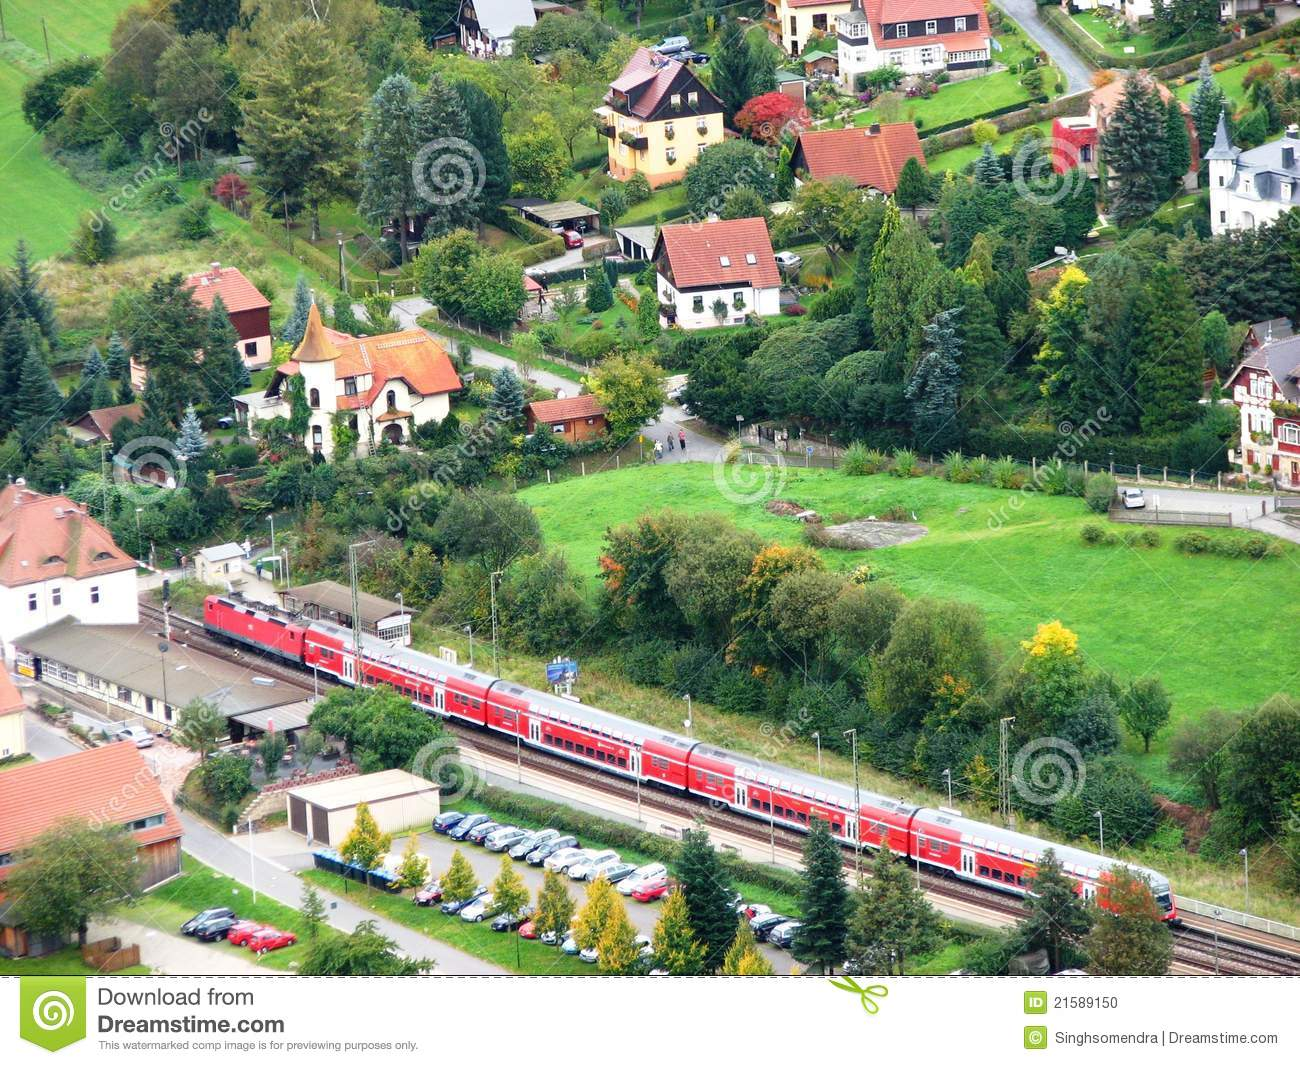 Birds Eye View Of A German Village Stock Photo   Image  21589150